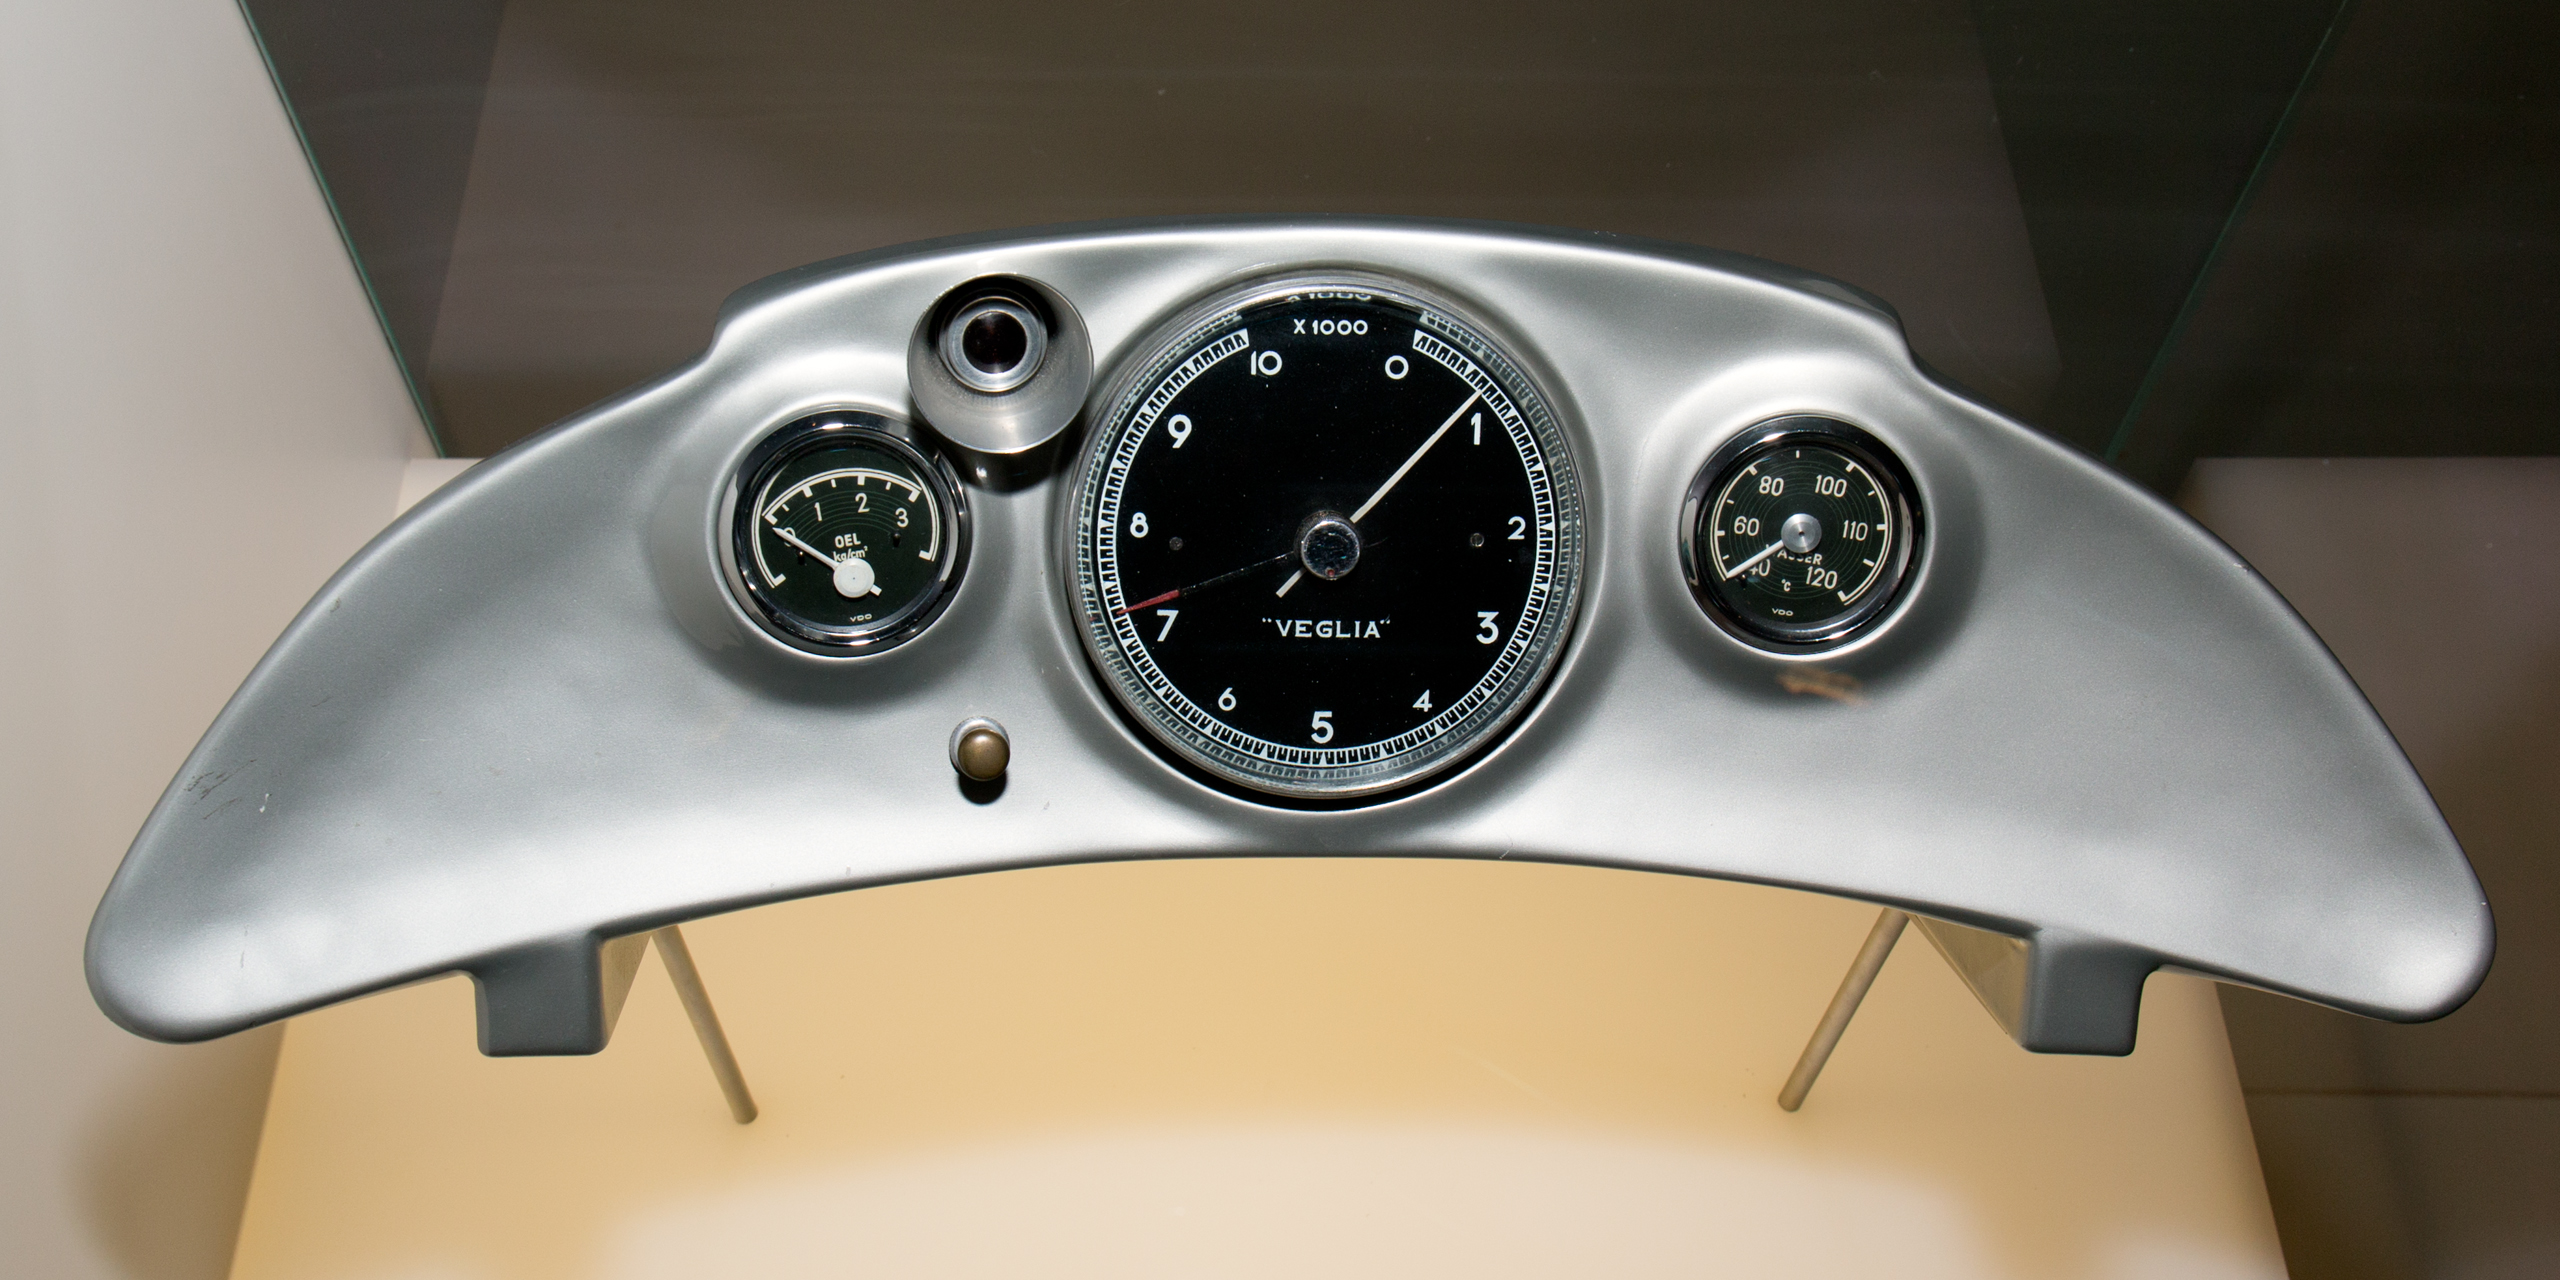 World Most Expensive Car >> File:Mercedes-Benz W196R dashboard Mercedes-Benz Museum ...